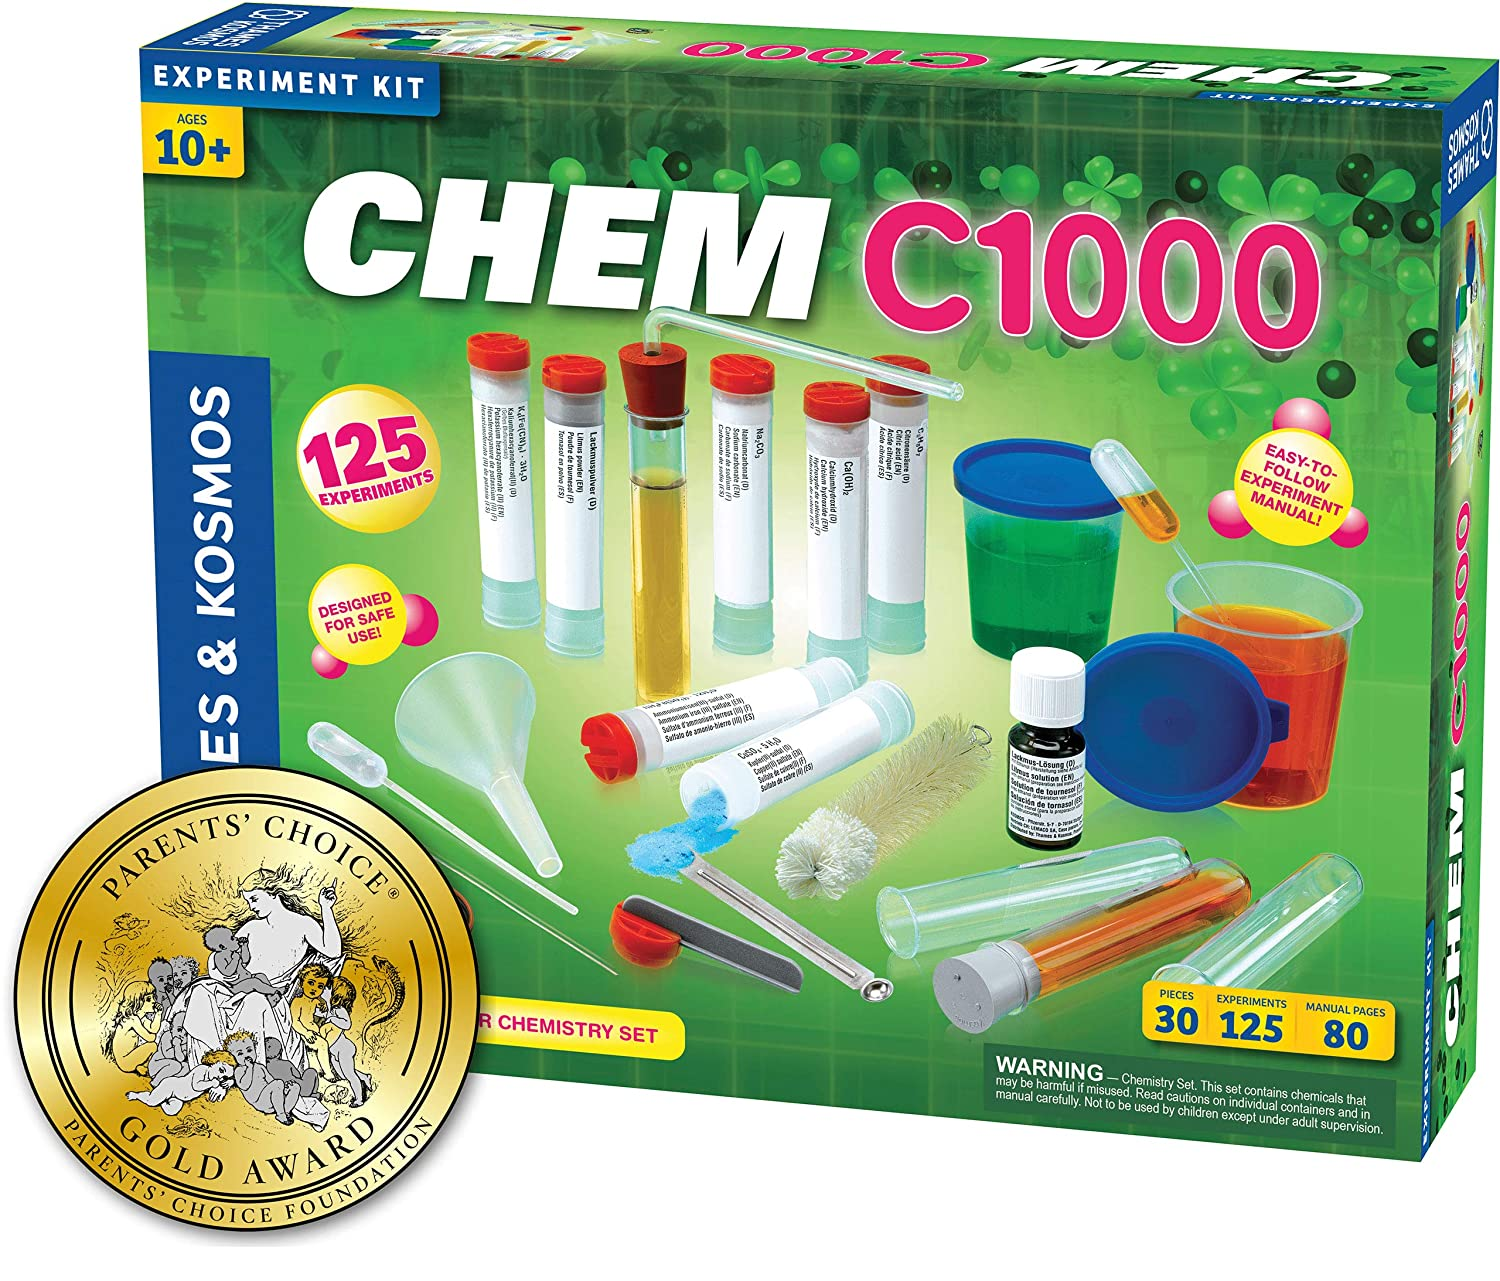 Thames & Kosmos Chem C1000 (V 2.0) Chemistry Set with 125 Experiments & 80 Page Lab Manual